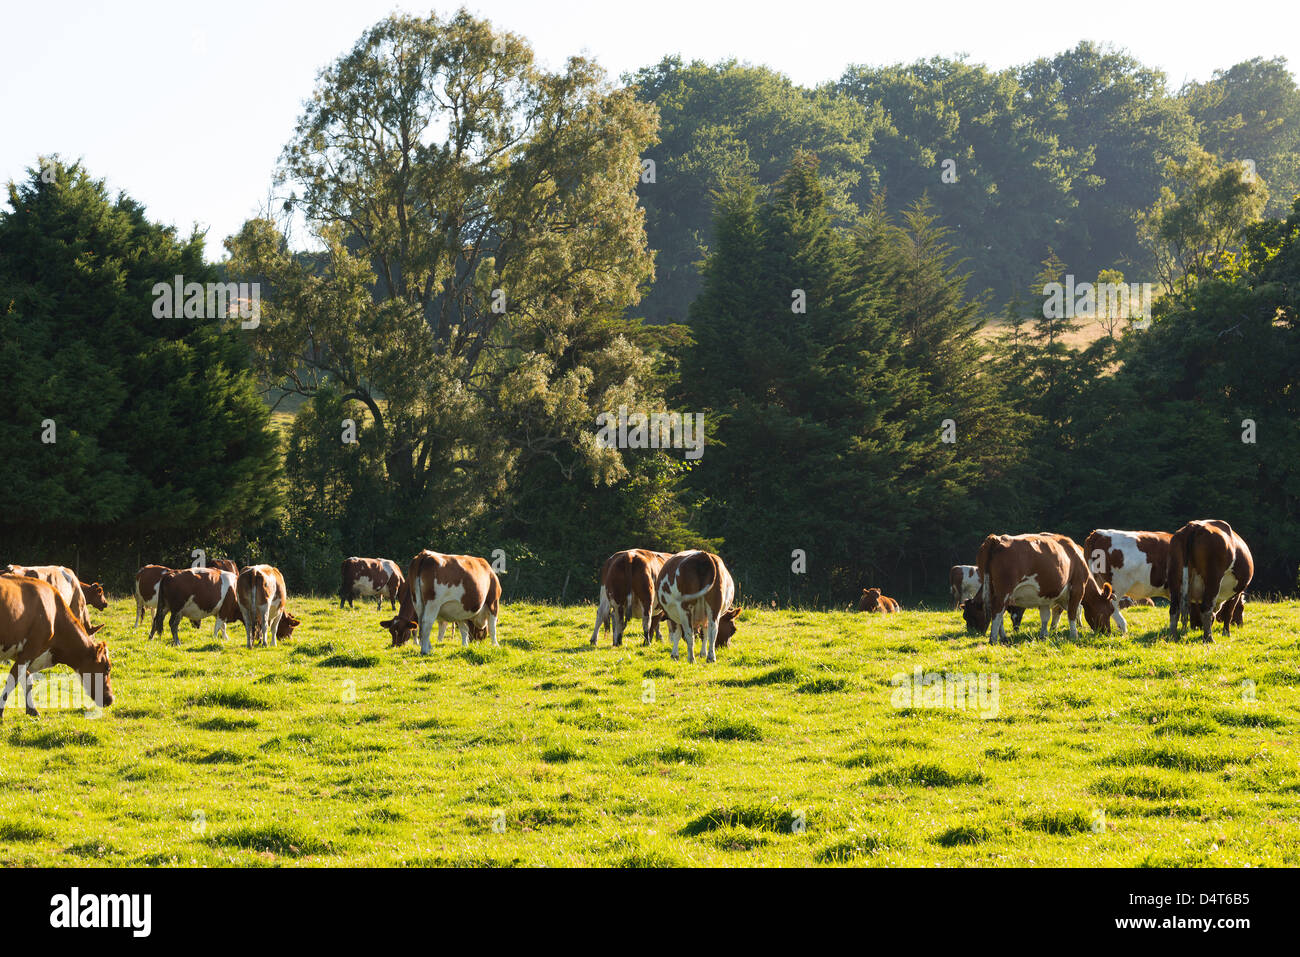 Cattle grazing in Southern Chile - Stock Image